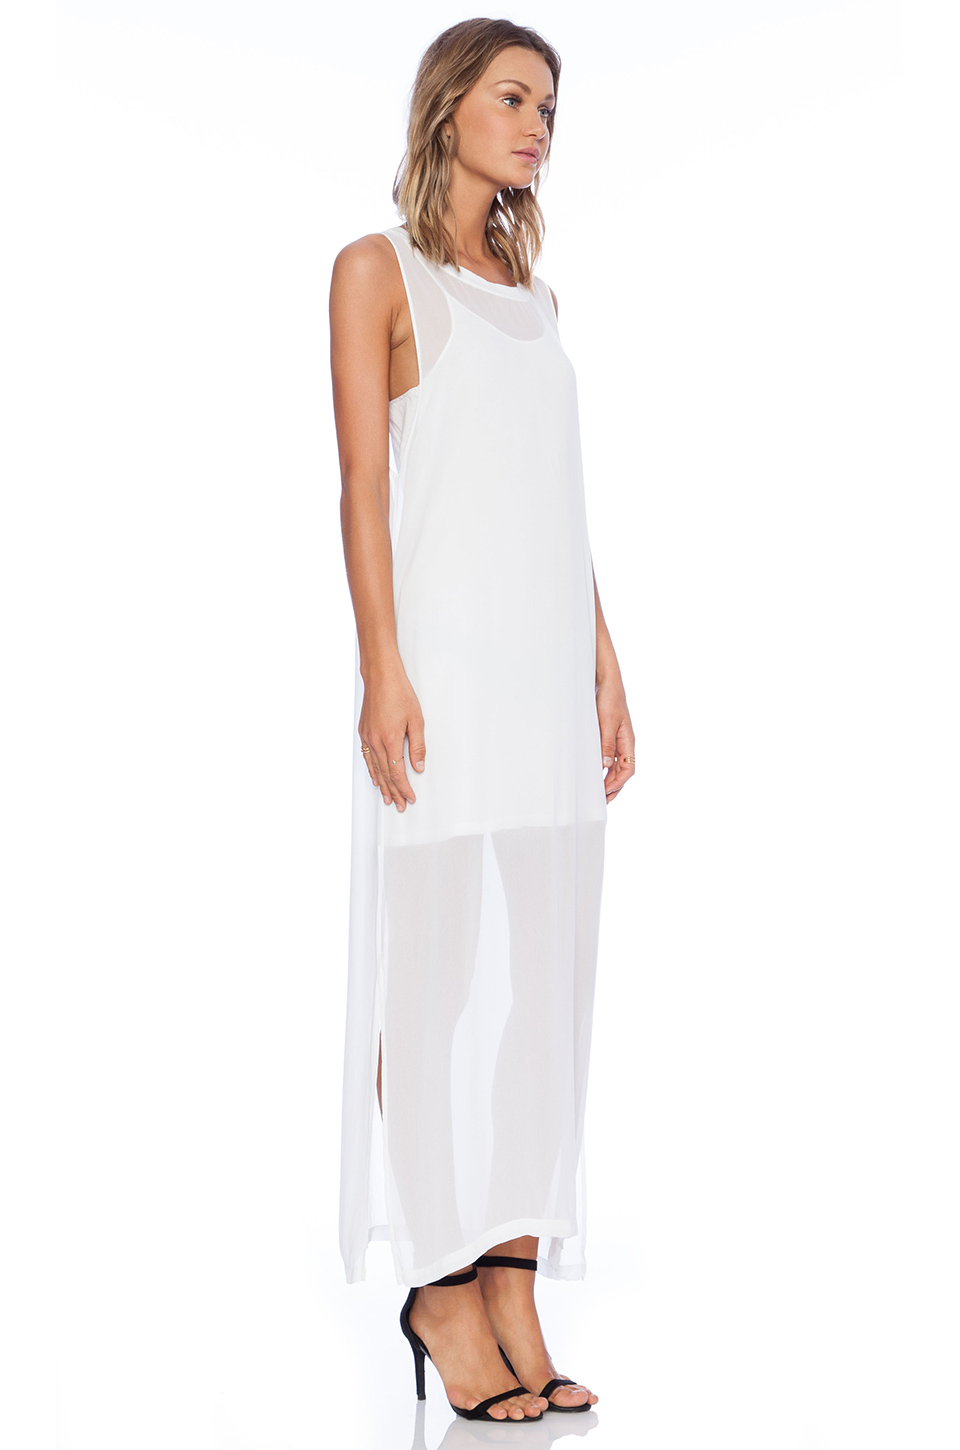 Lyst - Lacausa Dad S Shirtdress in White a47cd4166